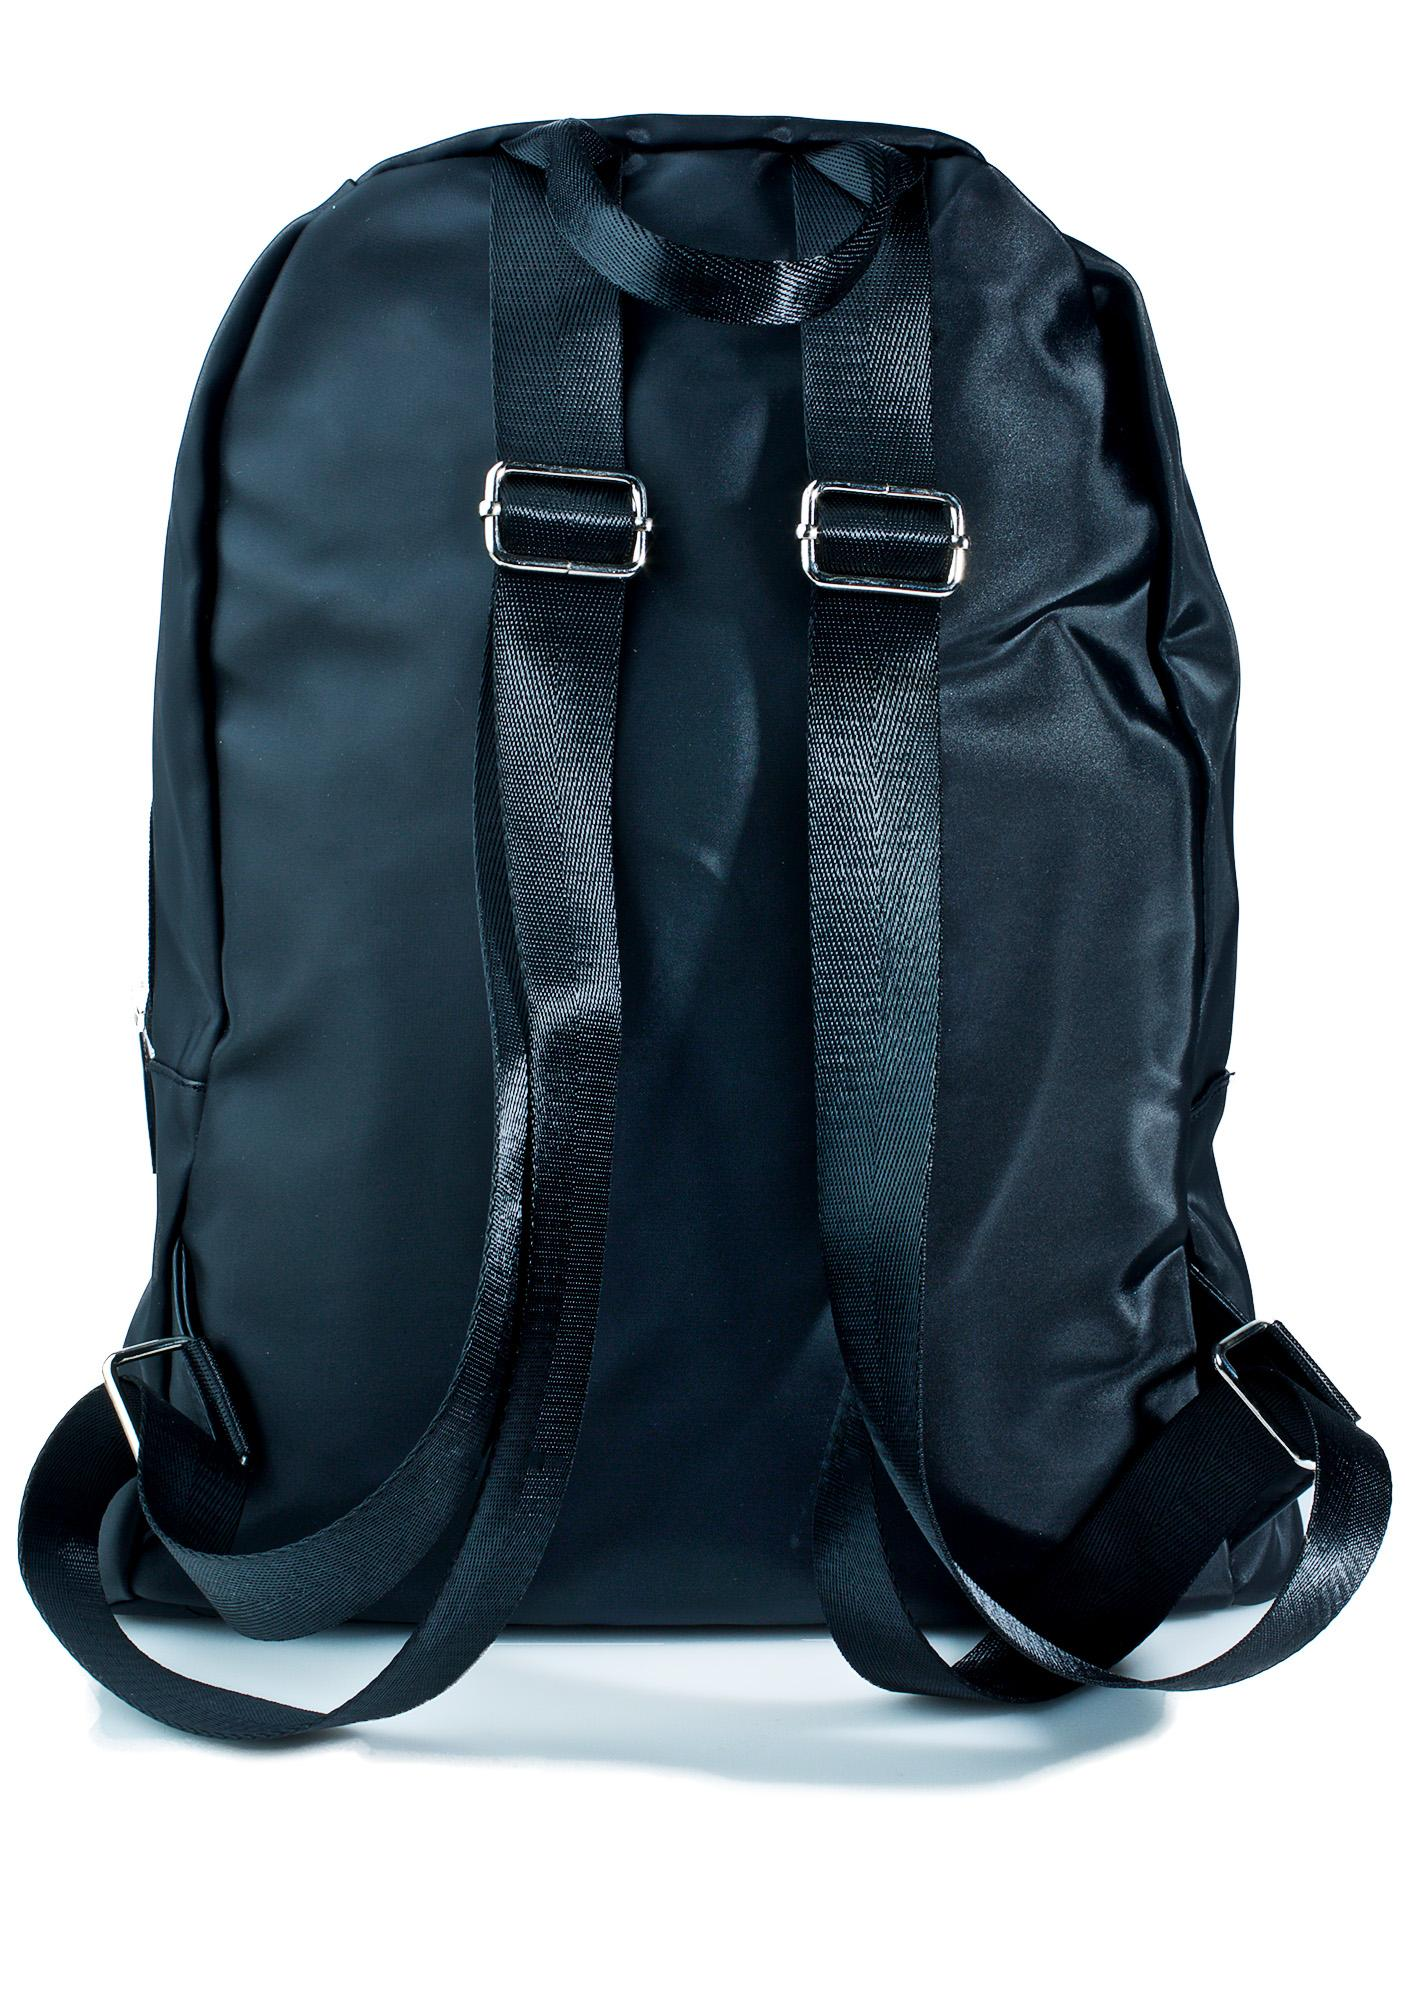 Sting Zipped Backpack